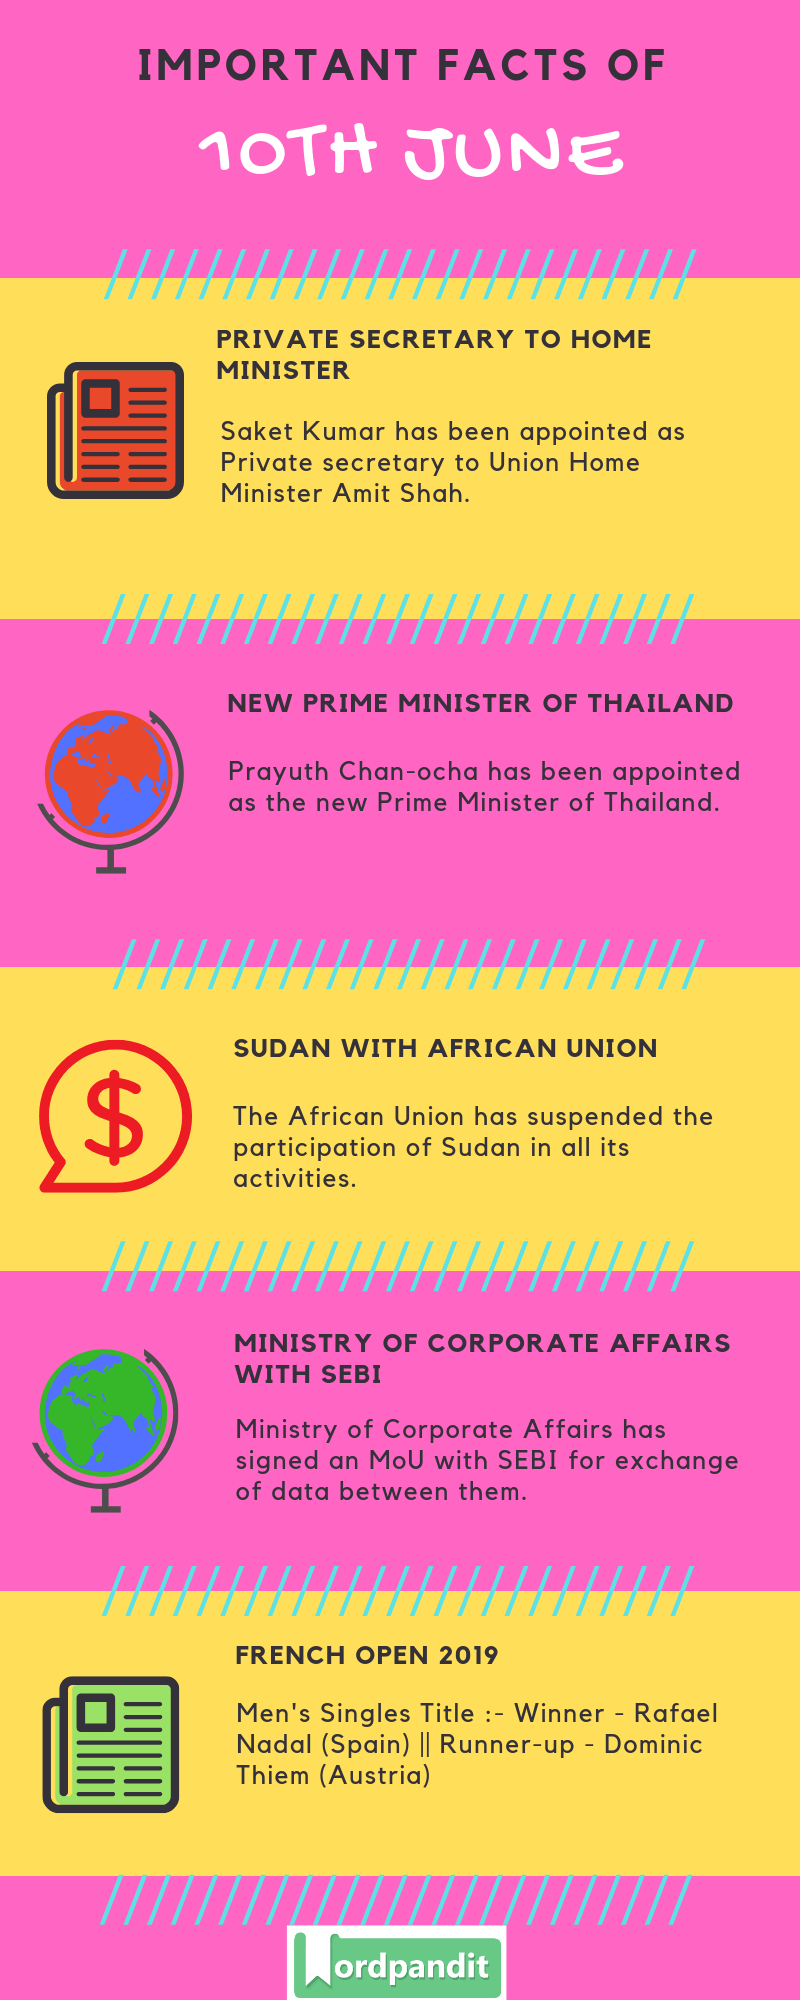 Daily Current Affairs 10 June 2019 Current Affairs Quiz 10 June 2019 Current Affairs Infographic